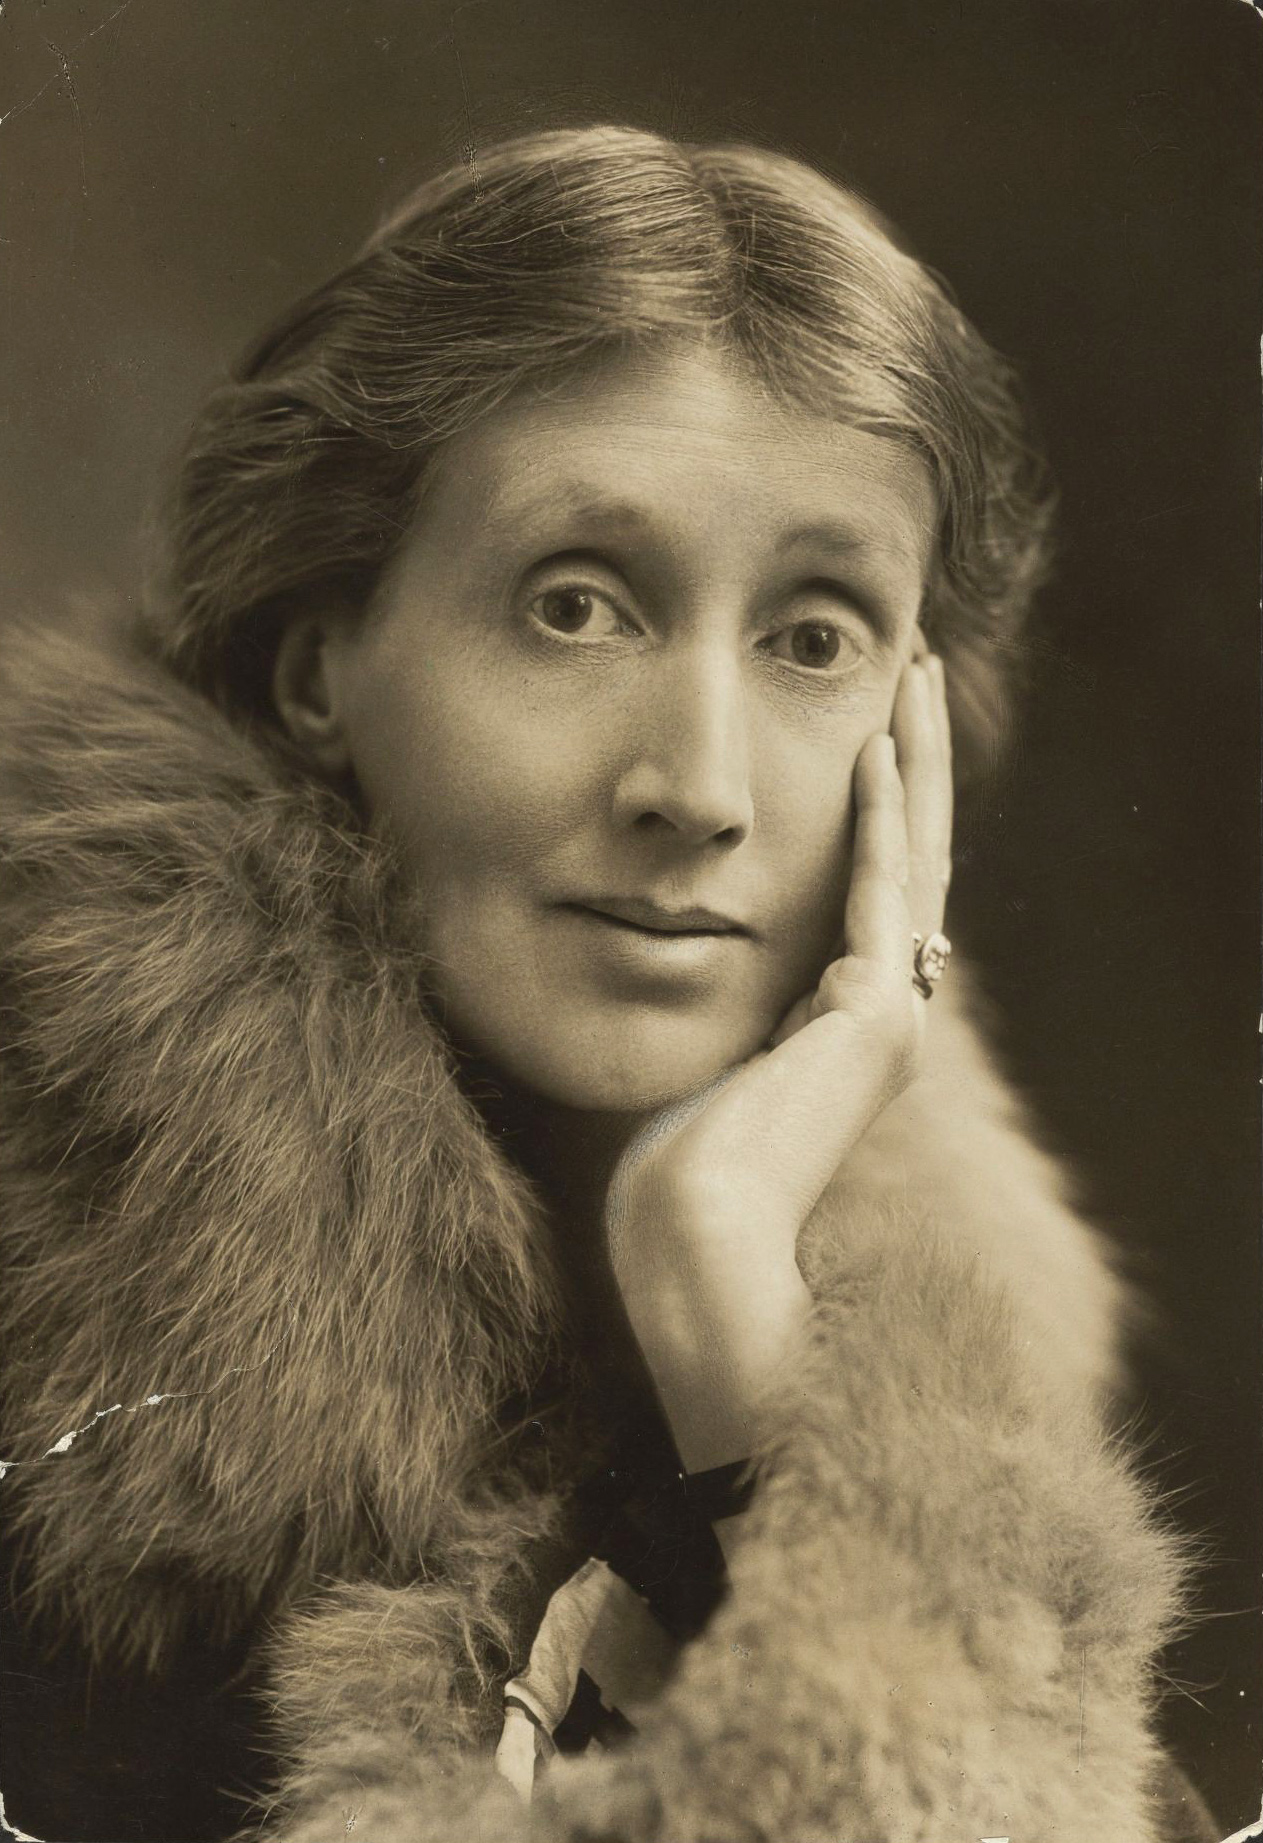 Virginia Woolf, c. 1927. Image courtesy Wikimedia Commons.